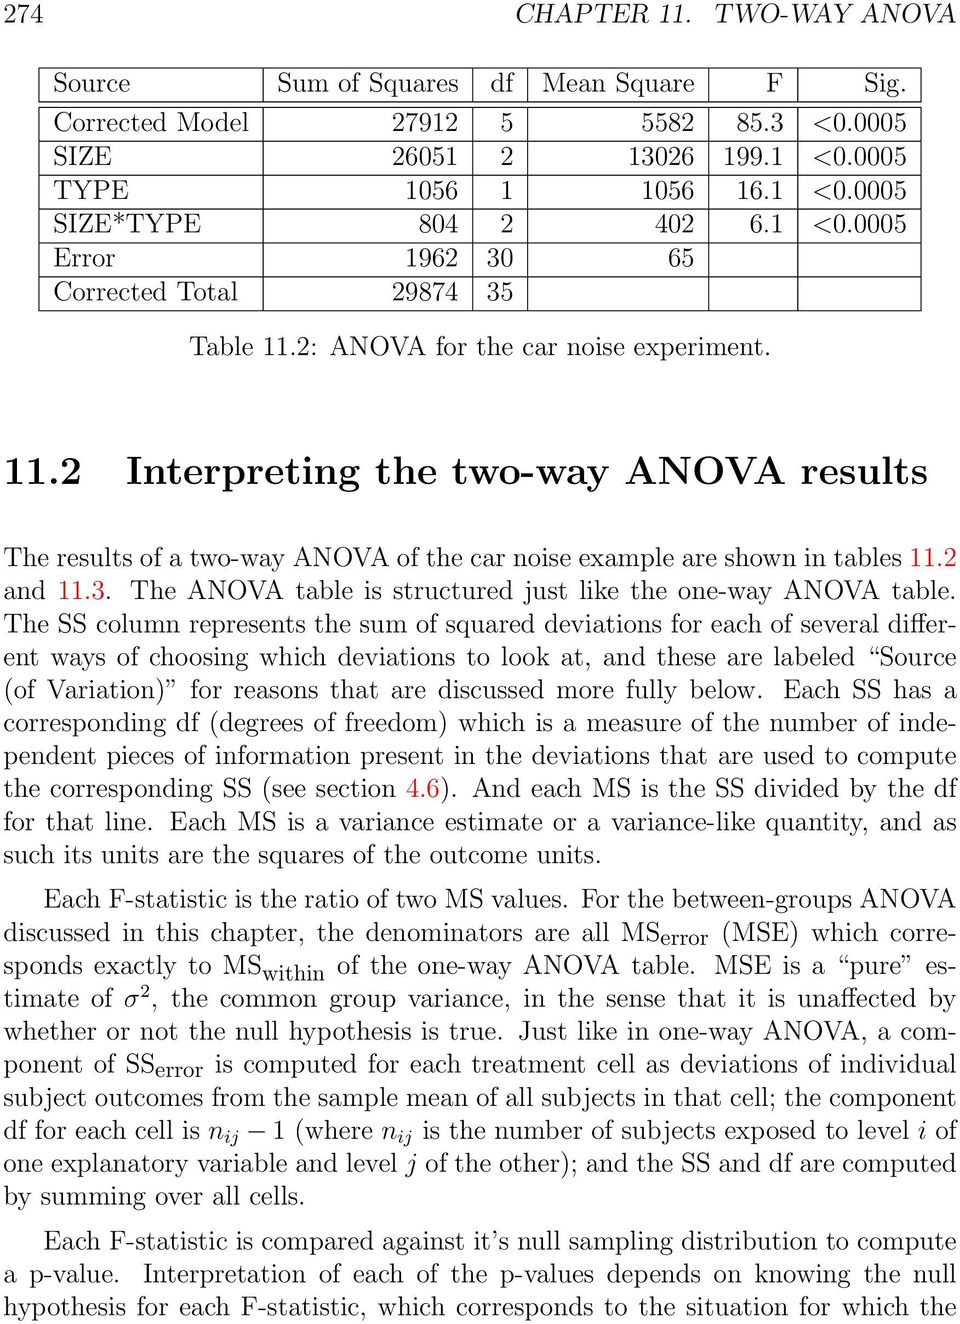 2 and 11.3. The ANOVA table is structured just like the one-way ANOVA table.